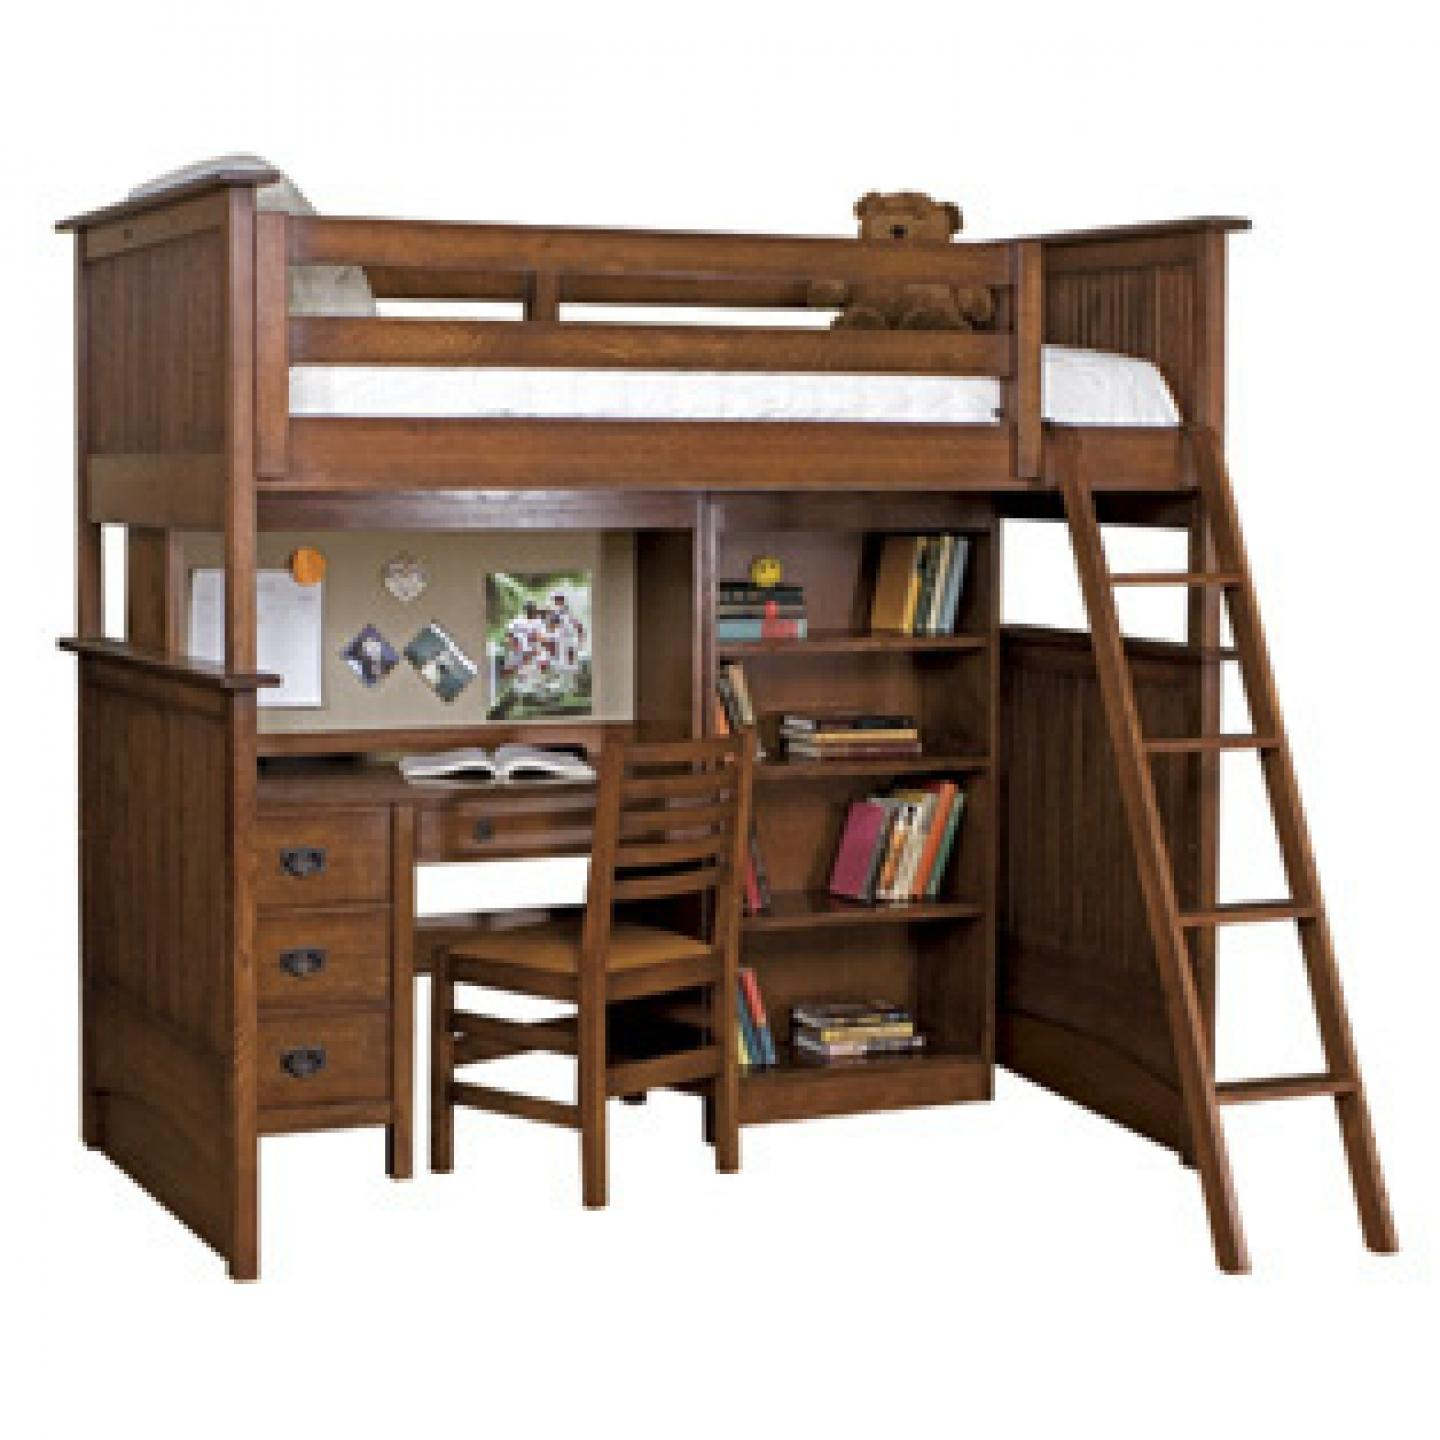 ... wood bunk bed desk ideas ... HZIHFCS